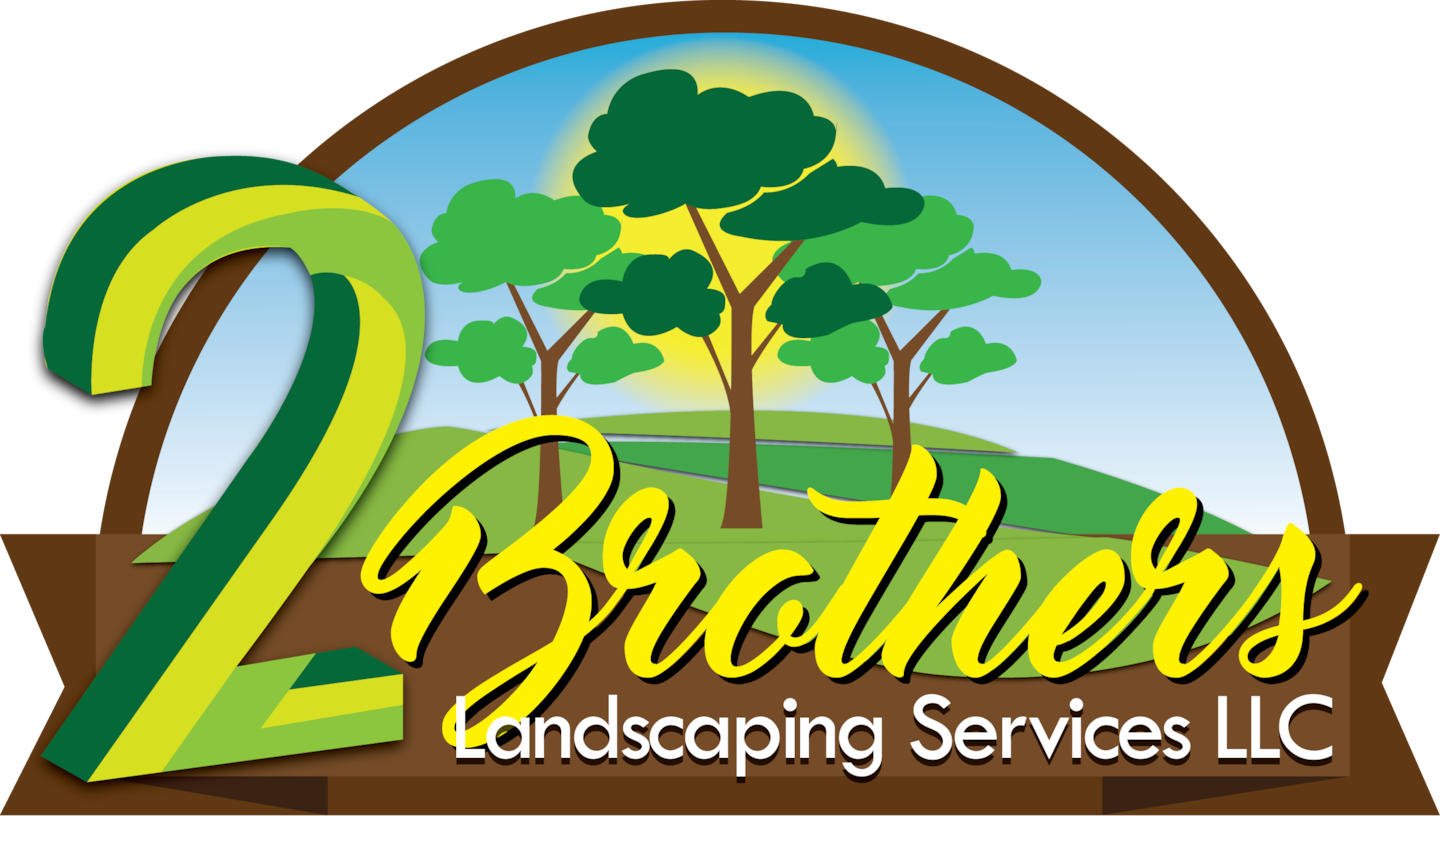 2 Brothers Landscaping Service LLC